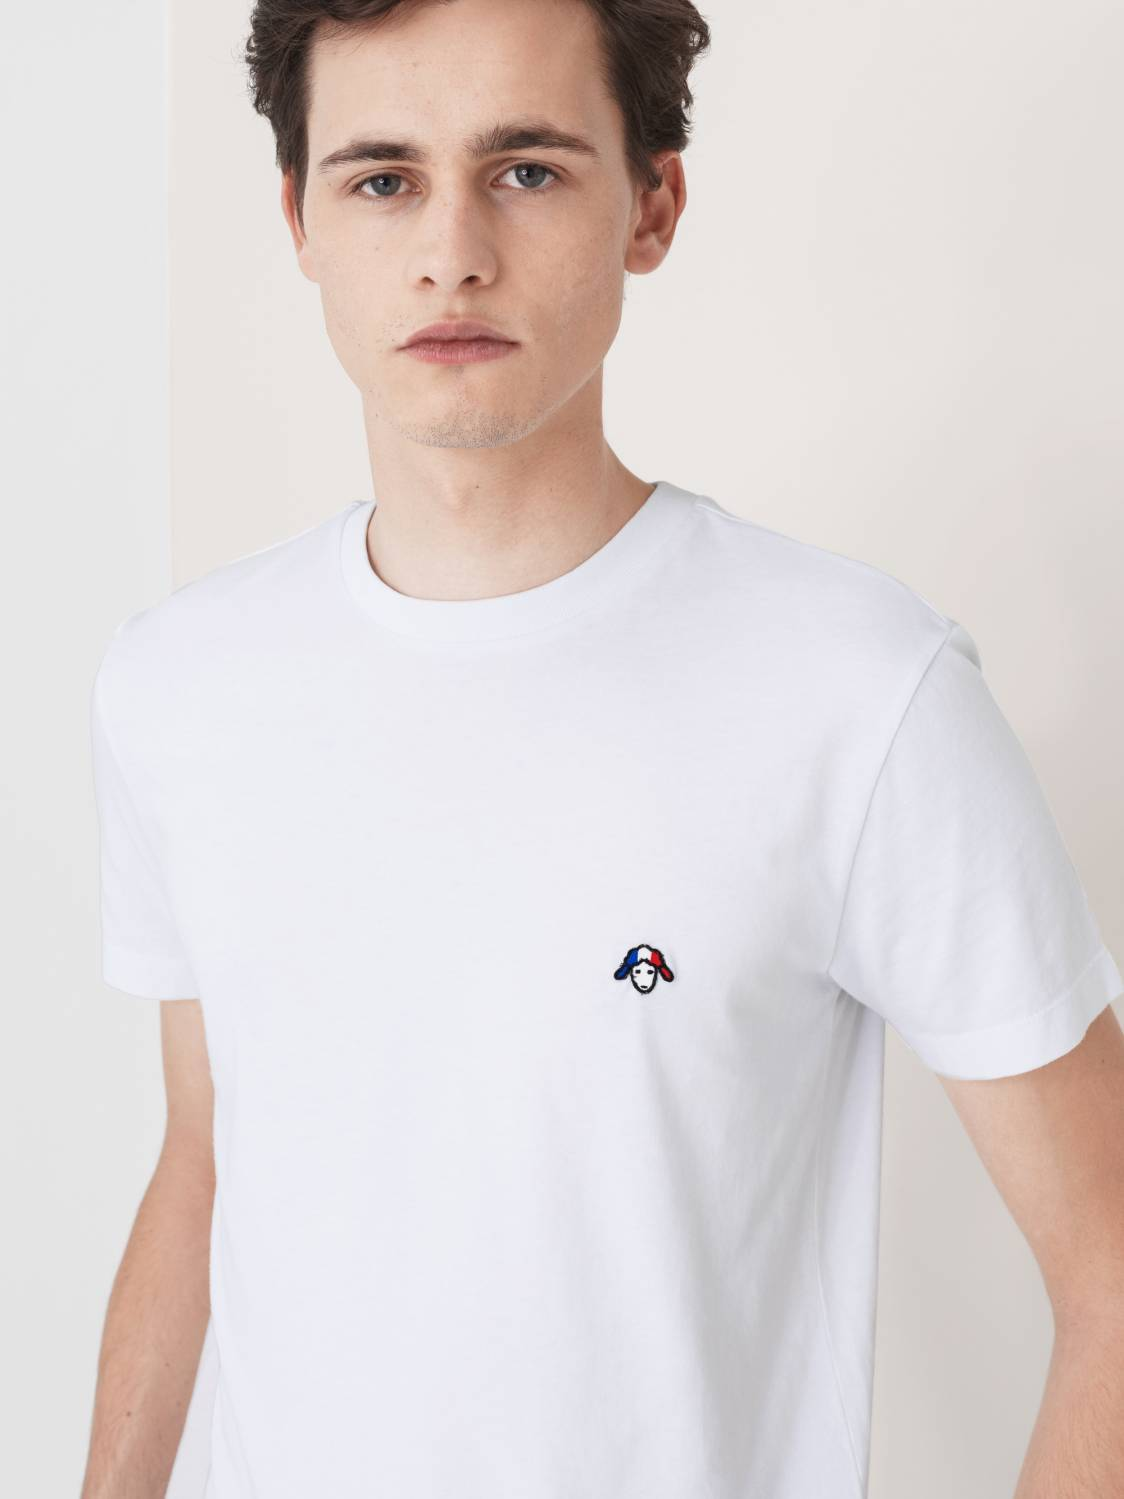 Sheep-embroidery T-Shirt